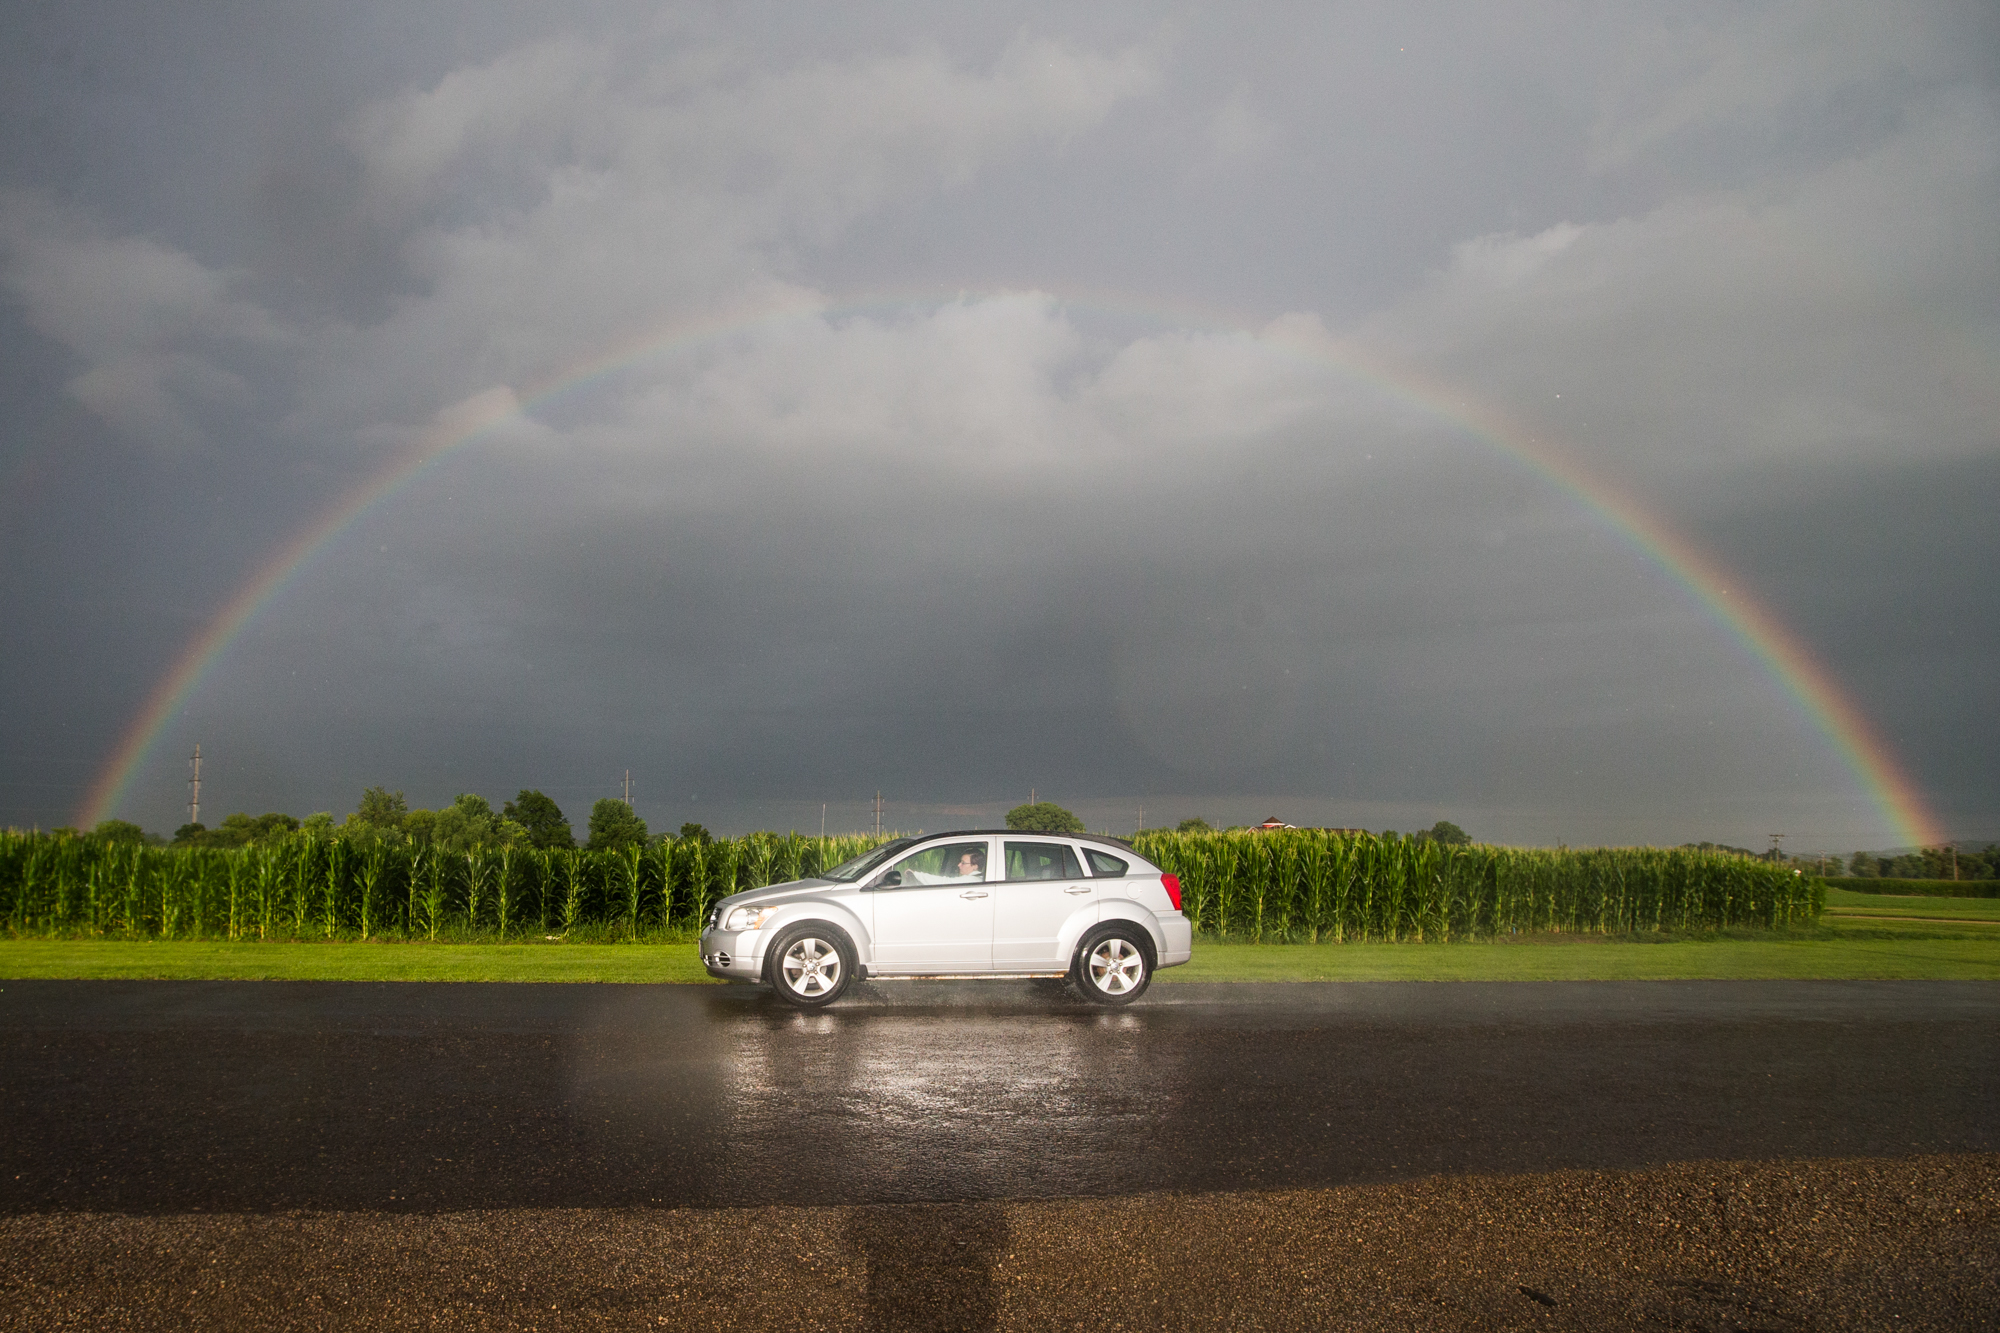 A rainbow arcs over a cornfield during thunderstorms on Thursday, July 19, 2018, near Lena Brewing Company in Lena. [SCOTT P. YATES/RRSTAR.COM & THE JOURNAL-STANDARD STAFF]